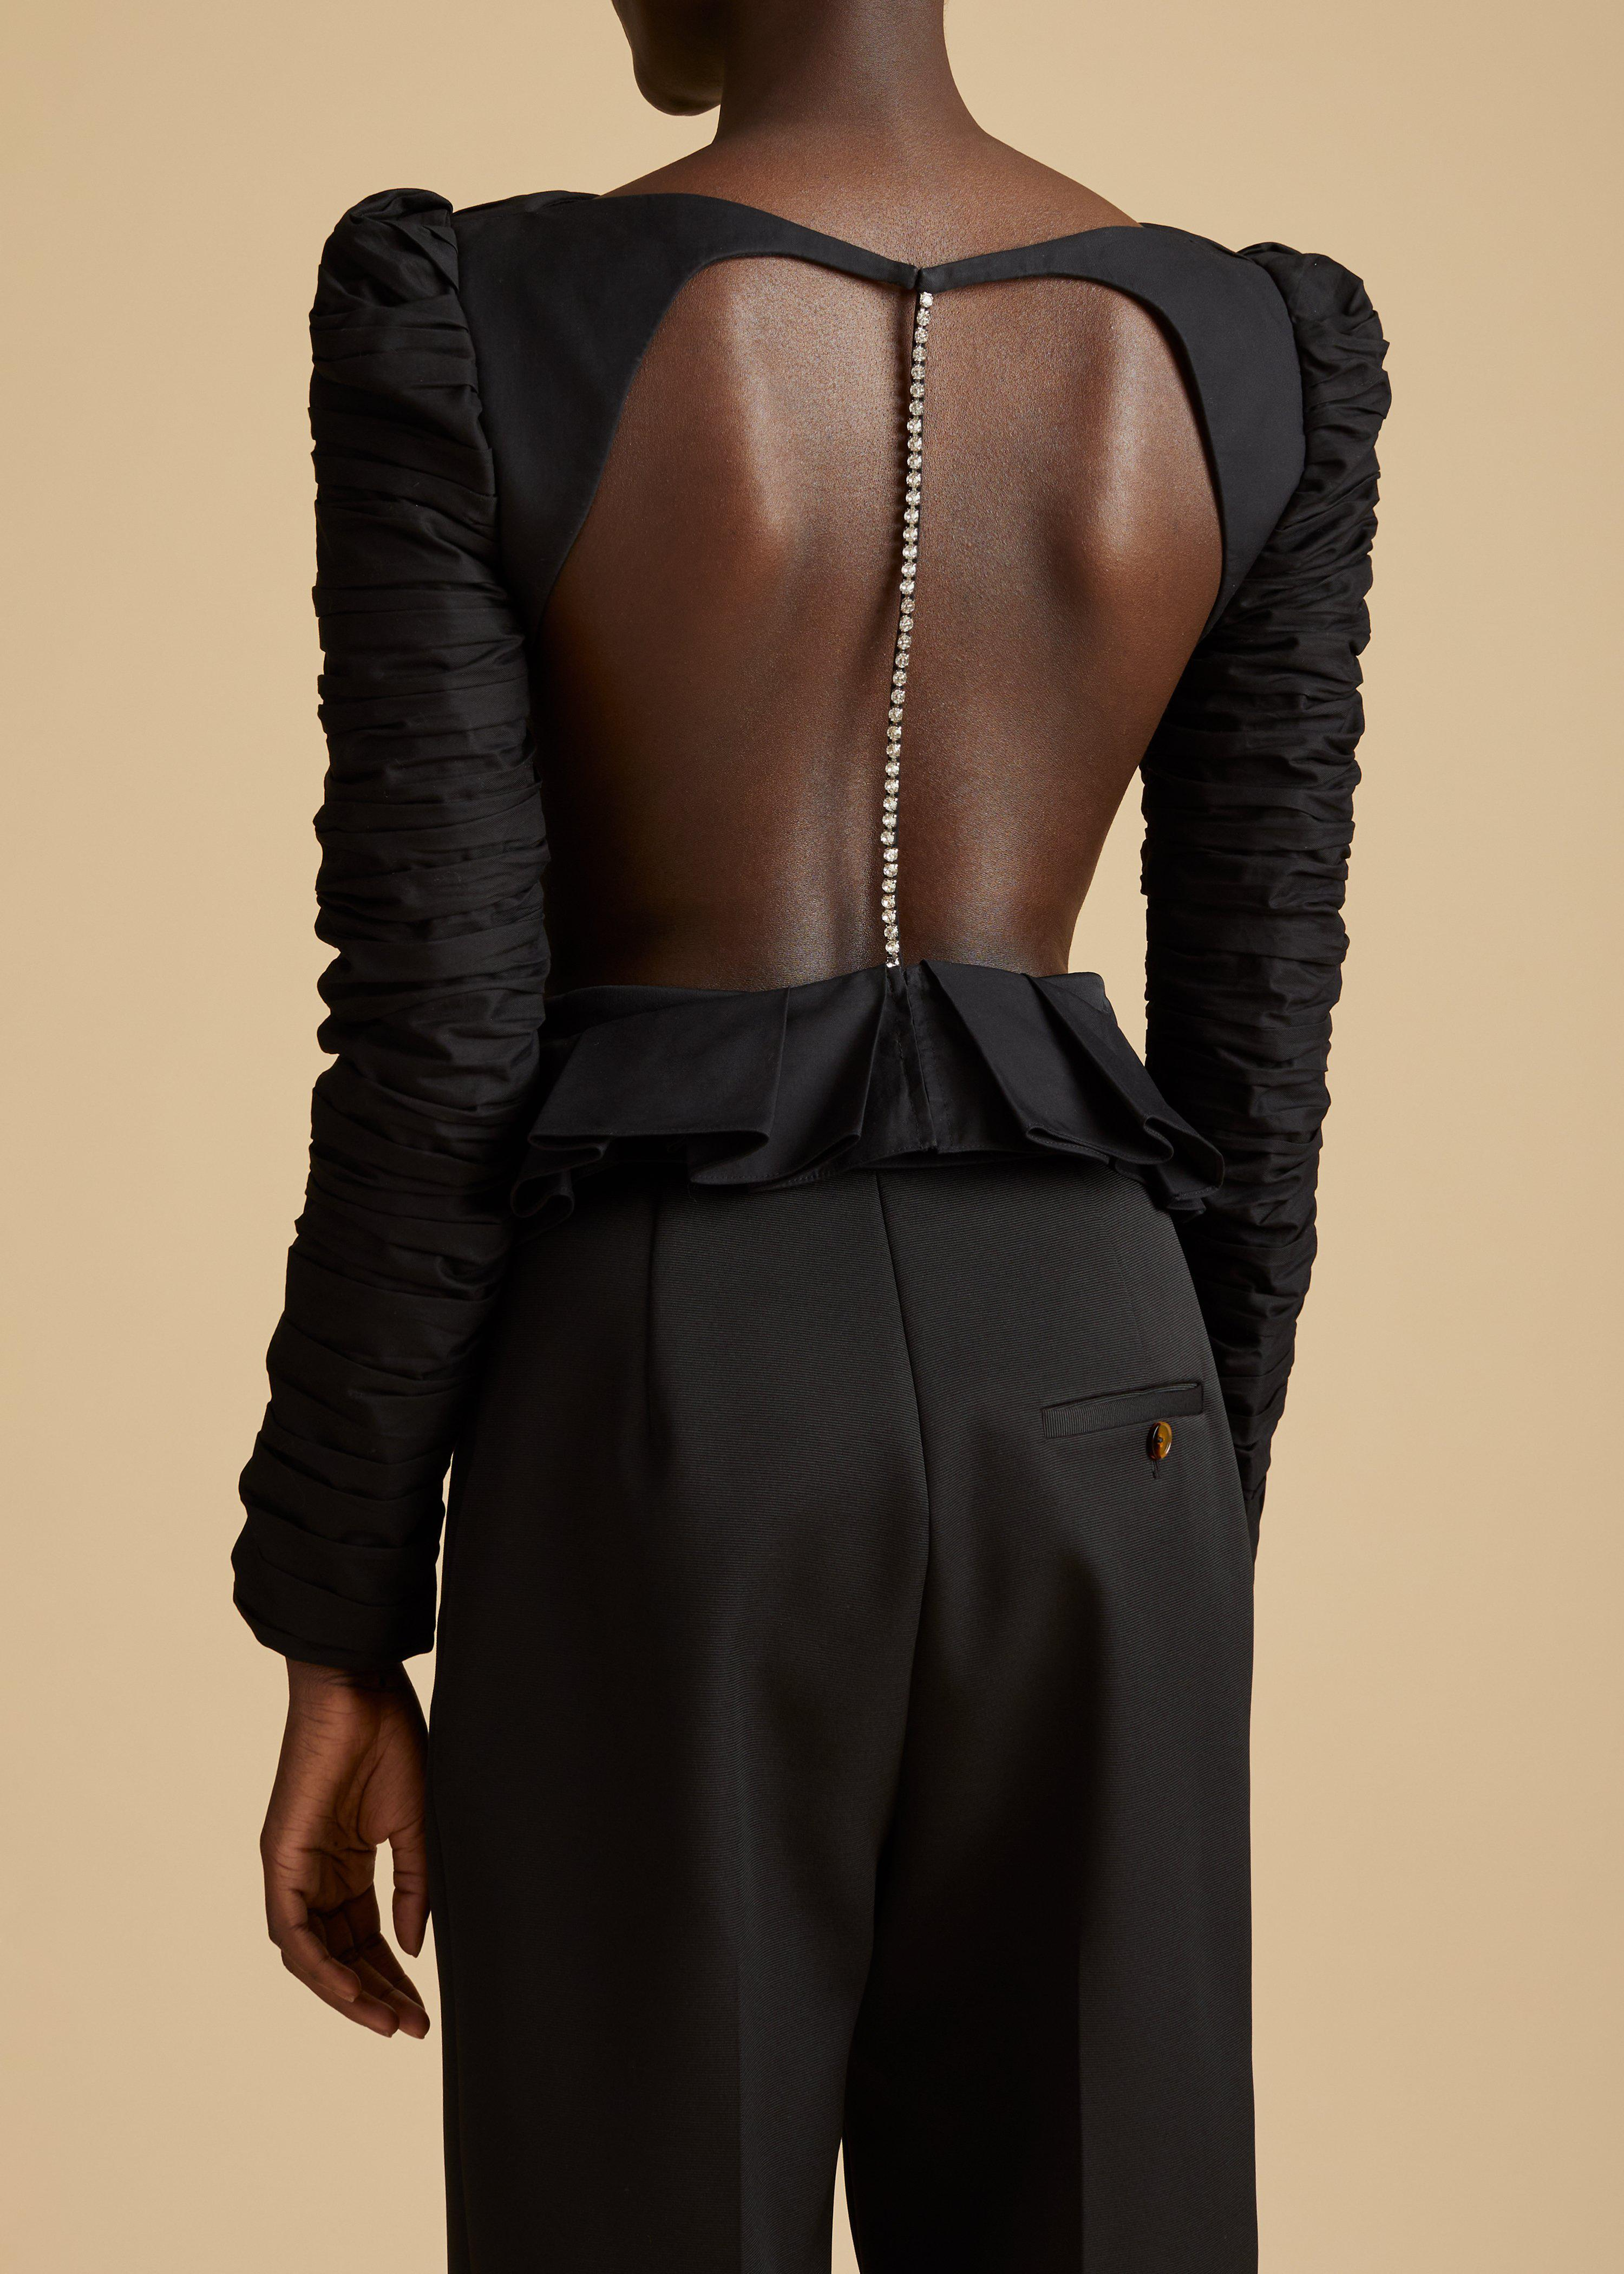 The Rosy Top in Black 2